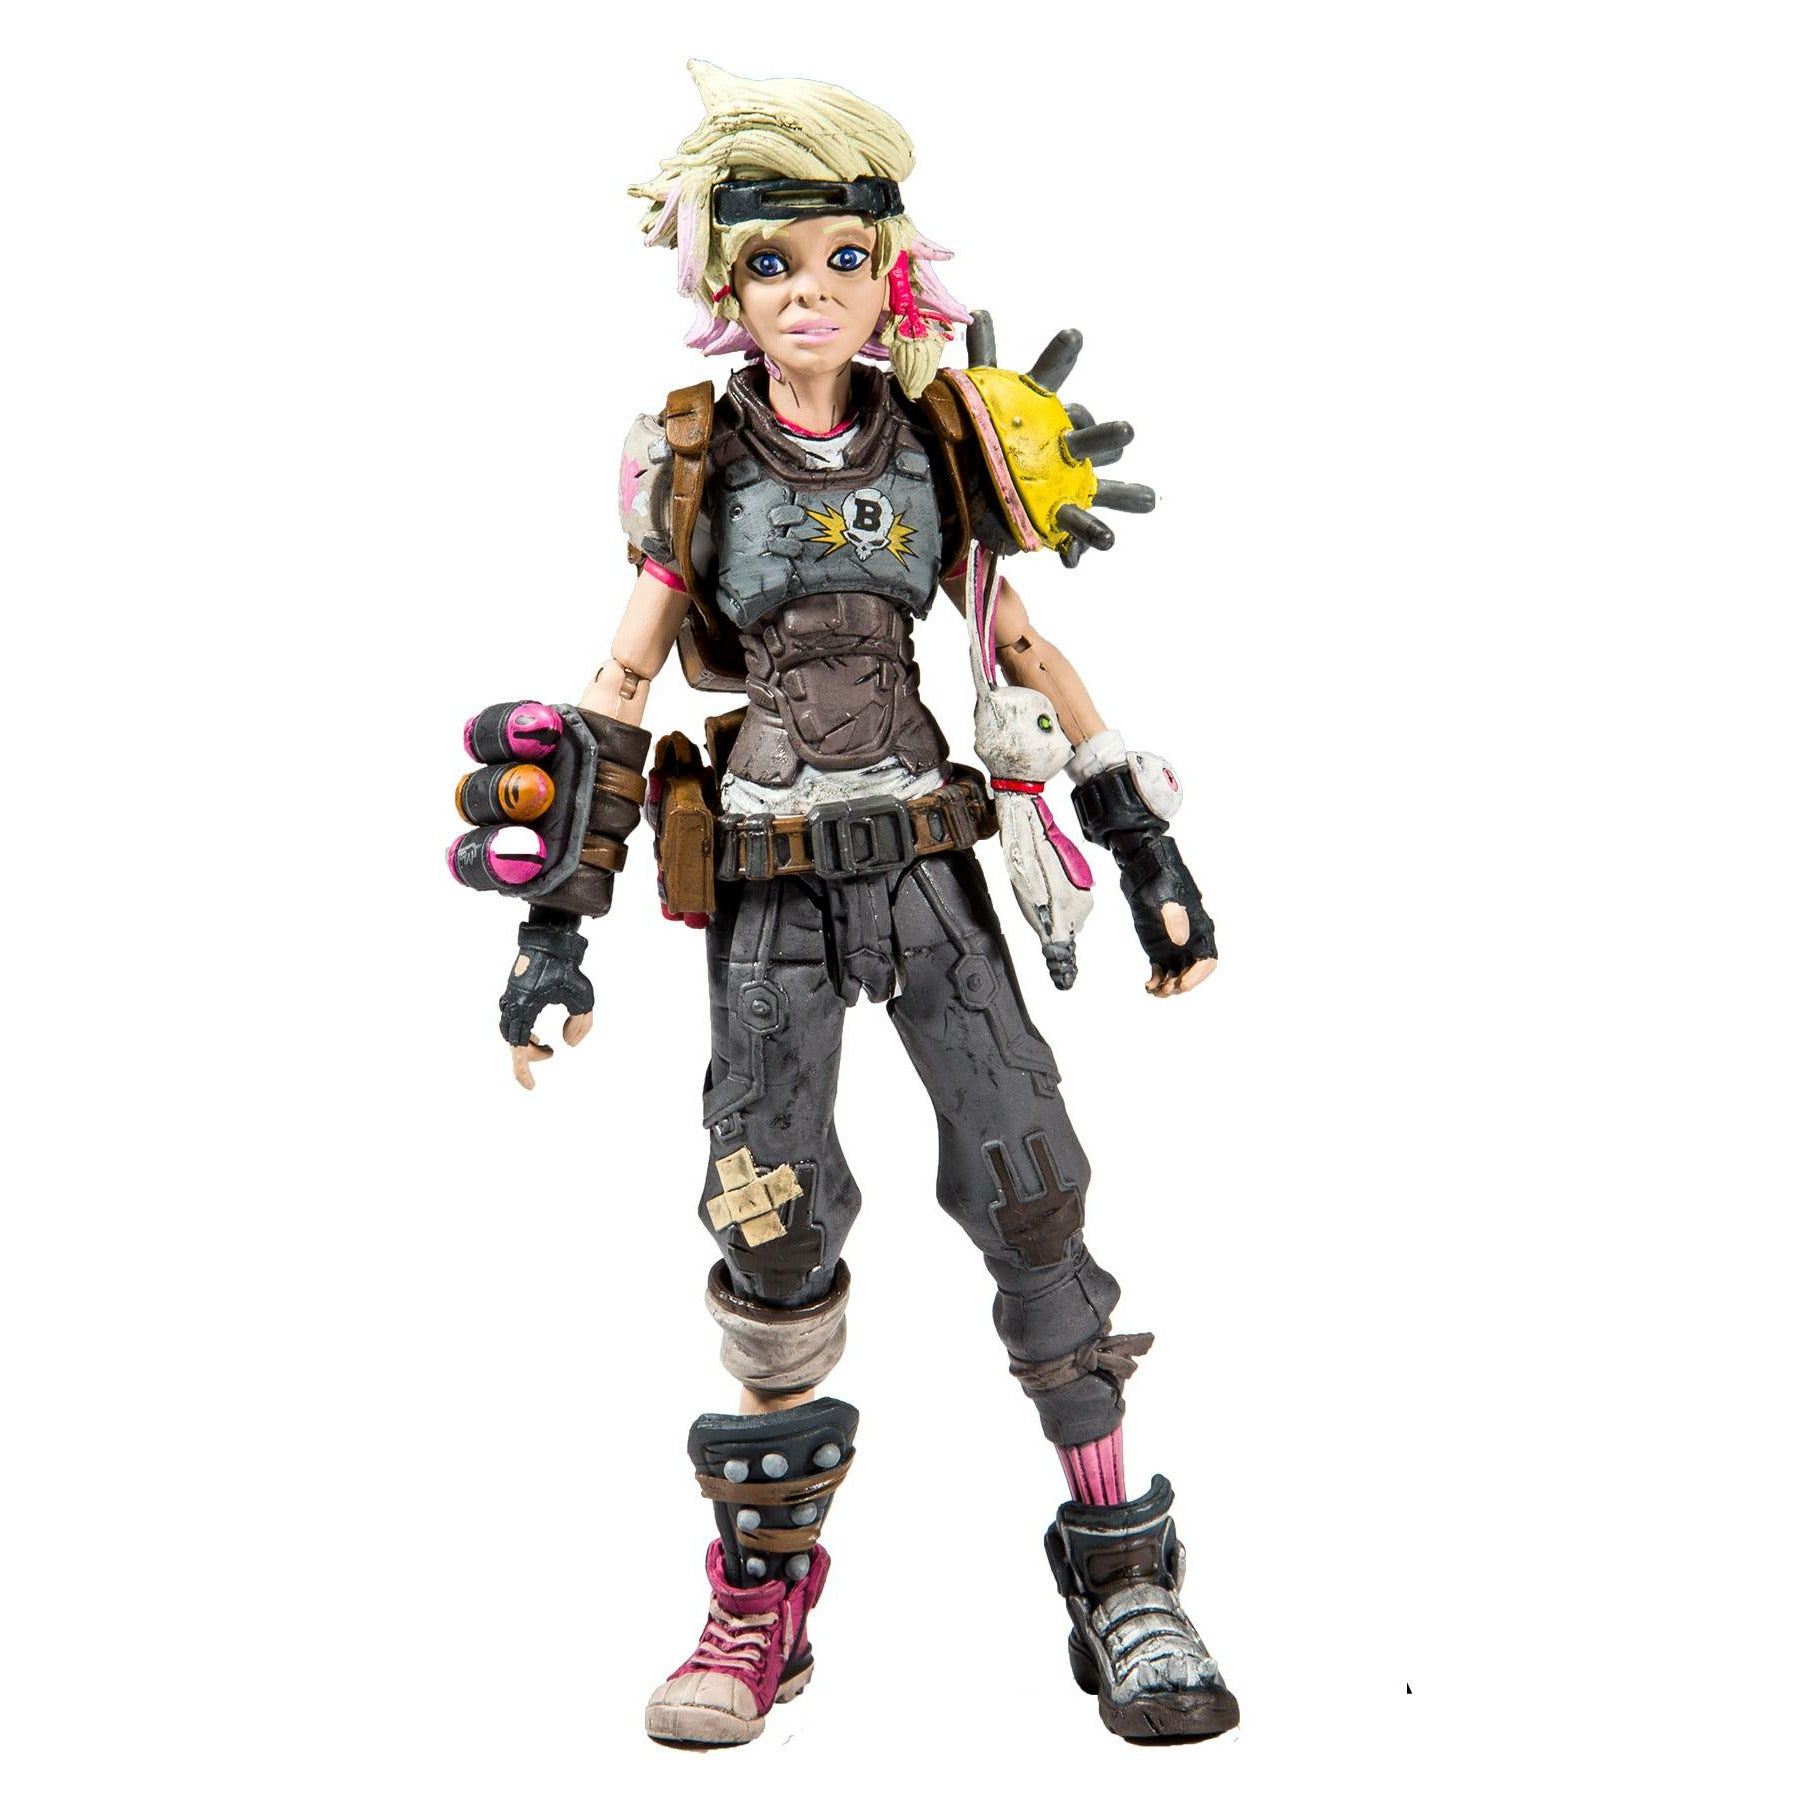 Borderlands 3 Tiny Tina 7 inch Action Figure